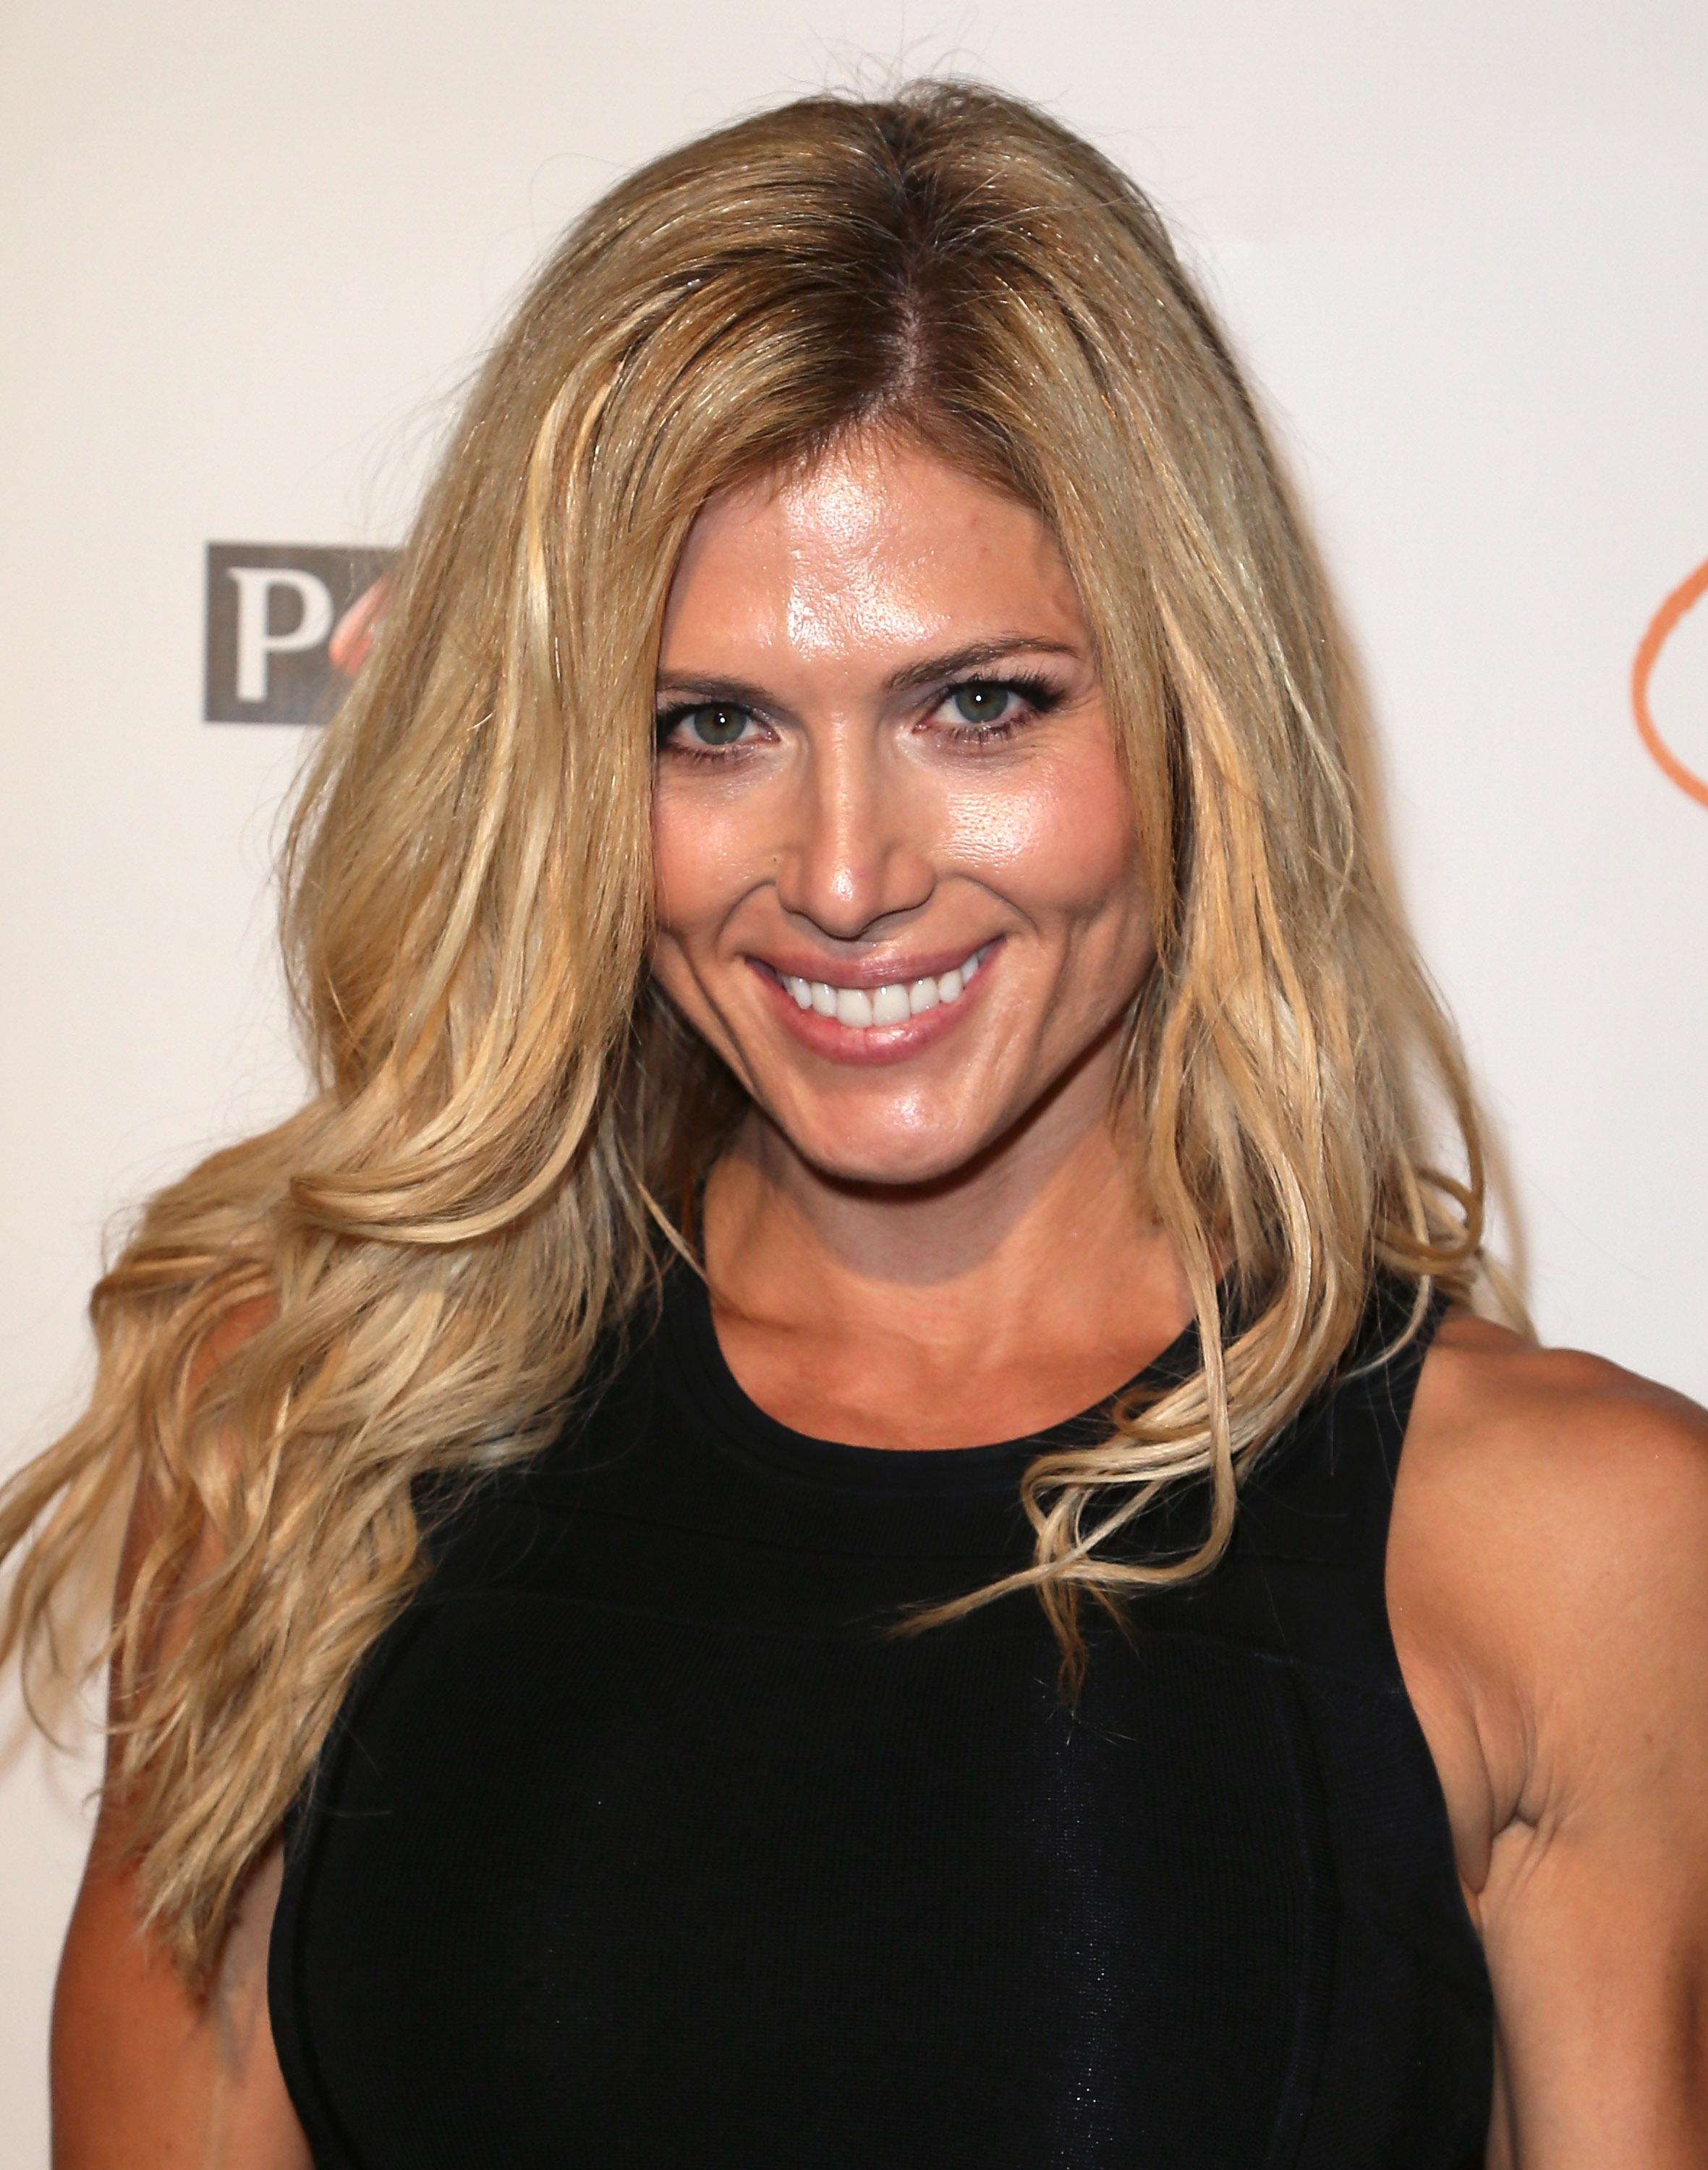 Beautiful Torrie Wilson is in the WWE Hall of Fame Class 2019